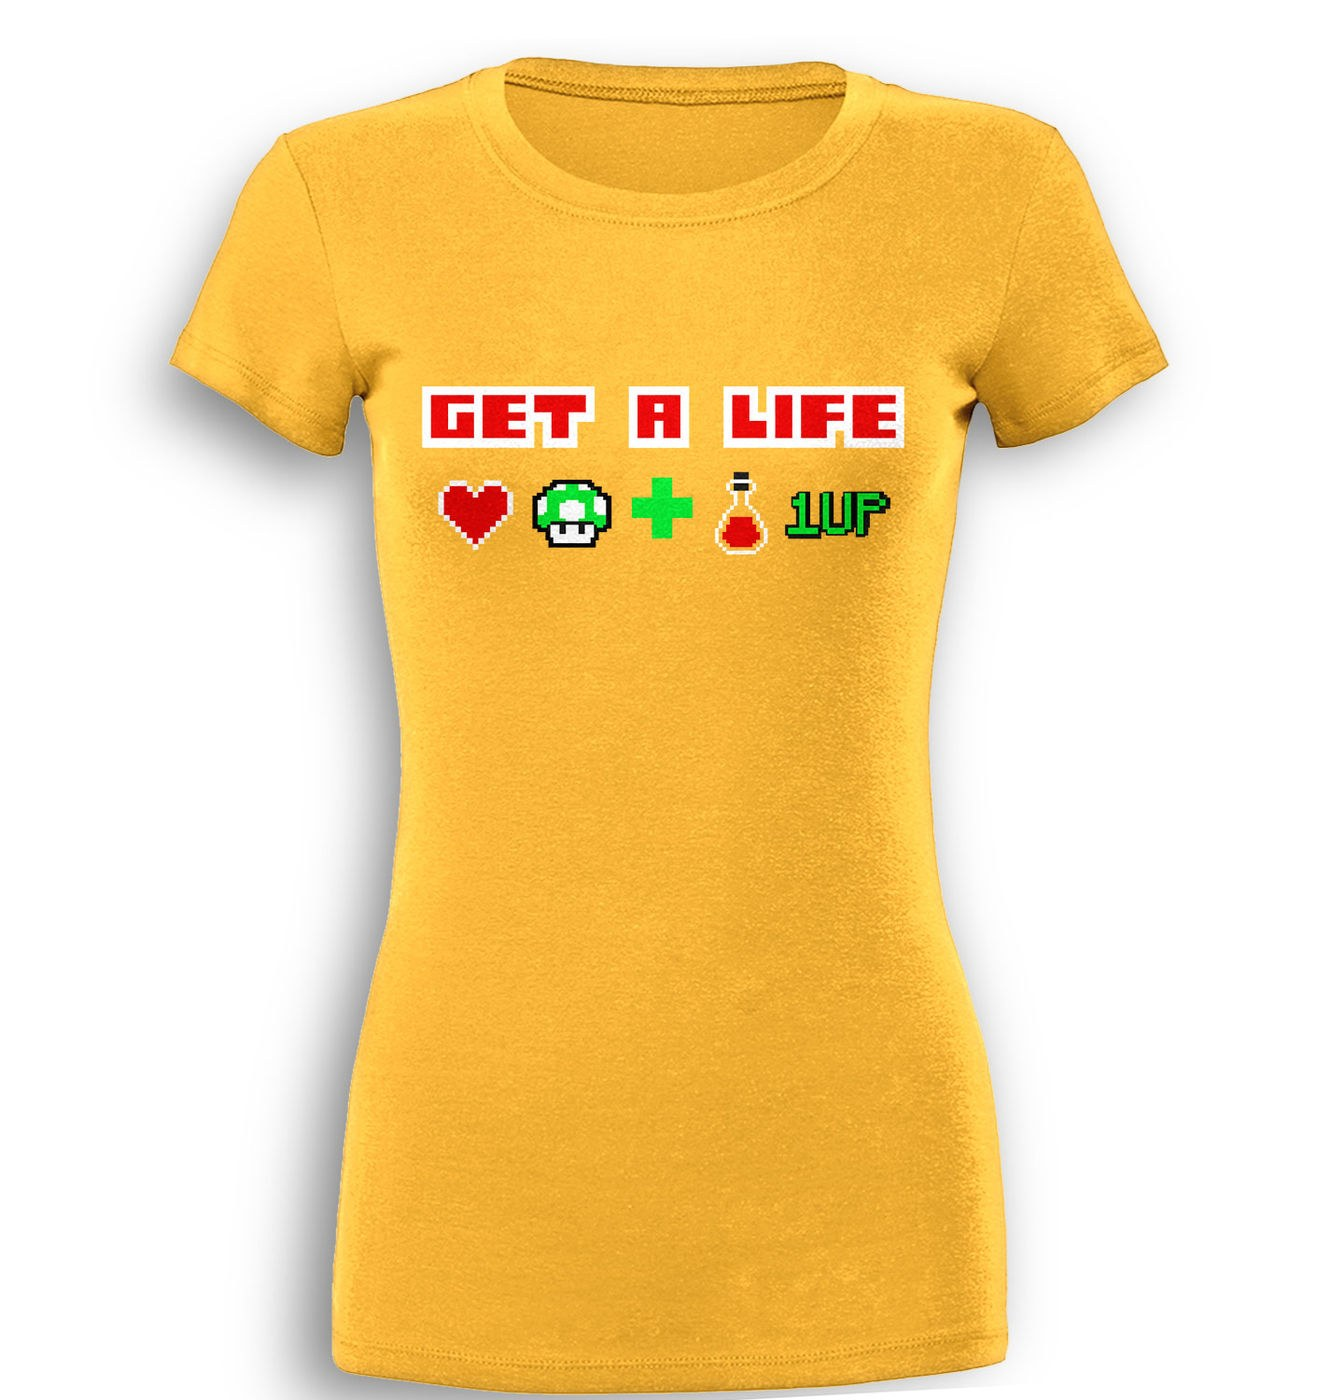 Get A Life premium women's t-shirt by Something Geeky